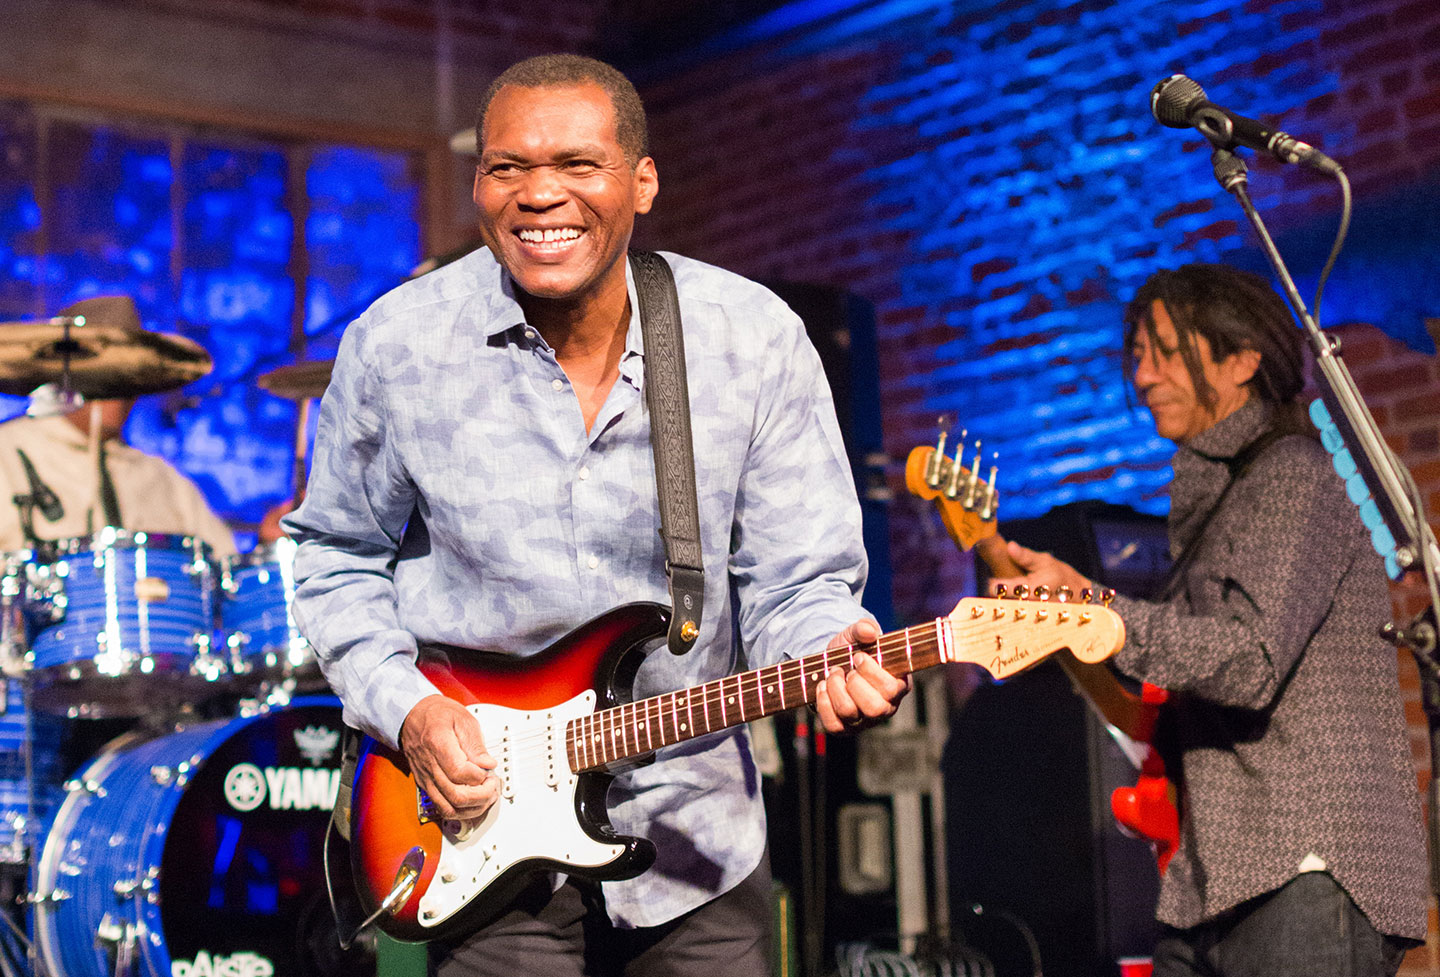 Robert Cray thumb